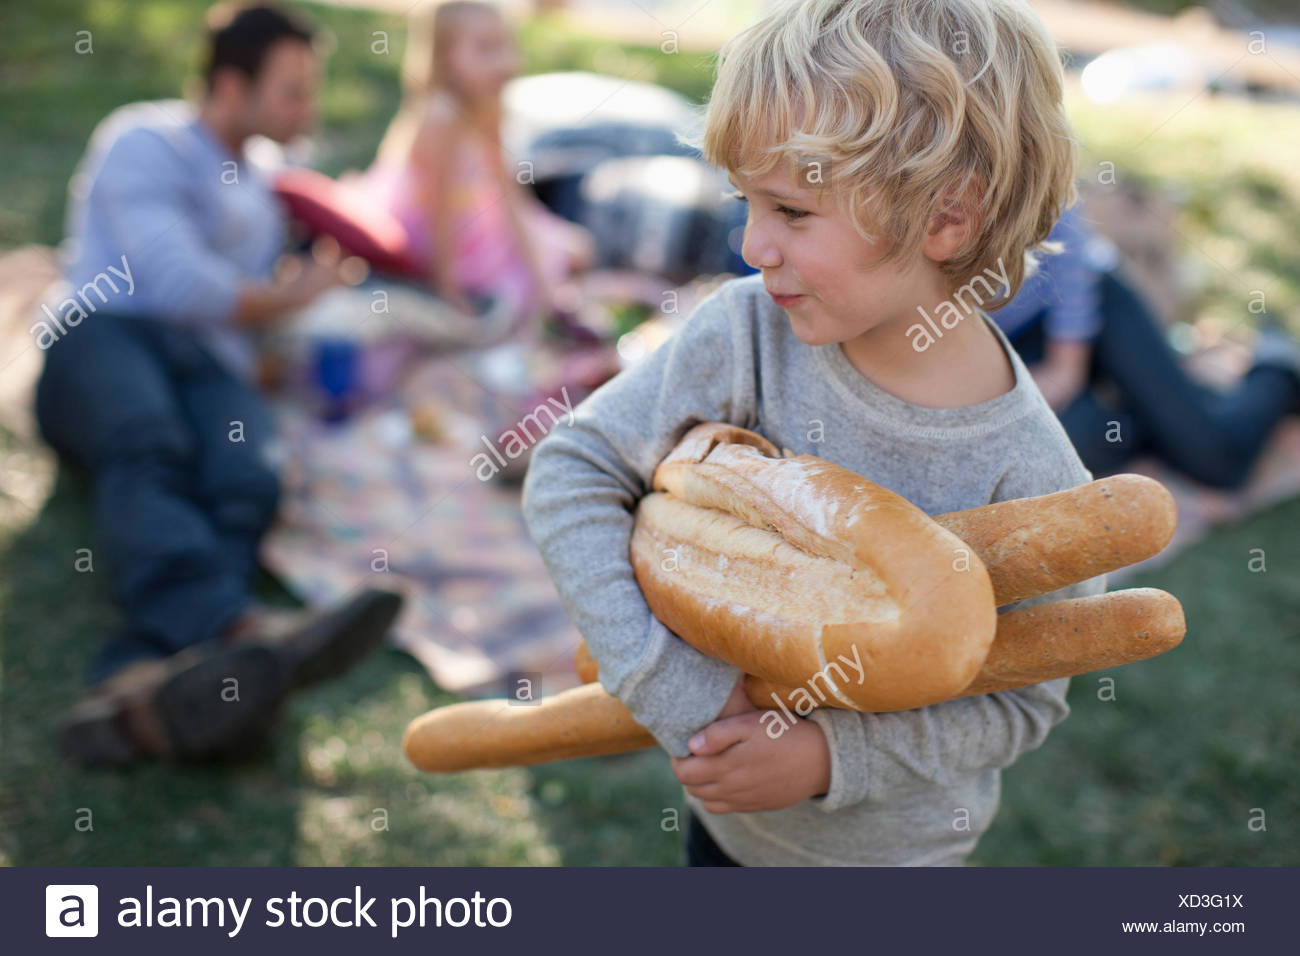 Boy holding loaves of bread outdoors - Stock Image